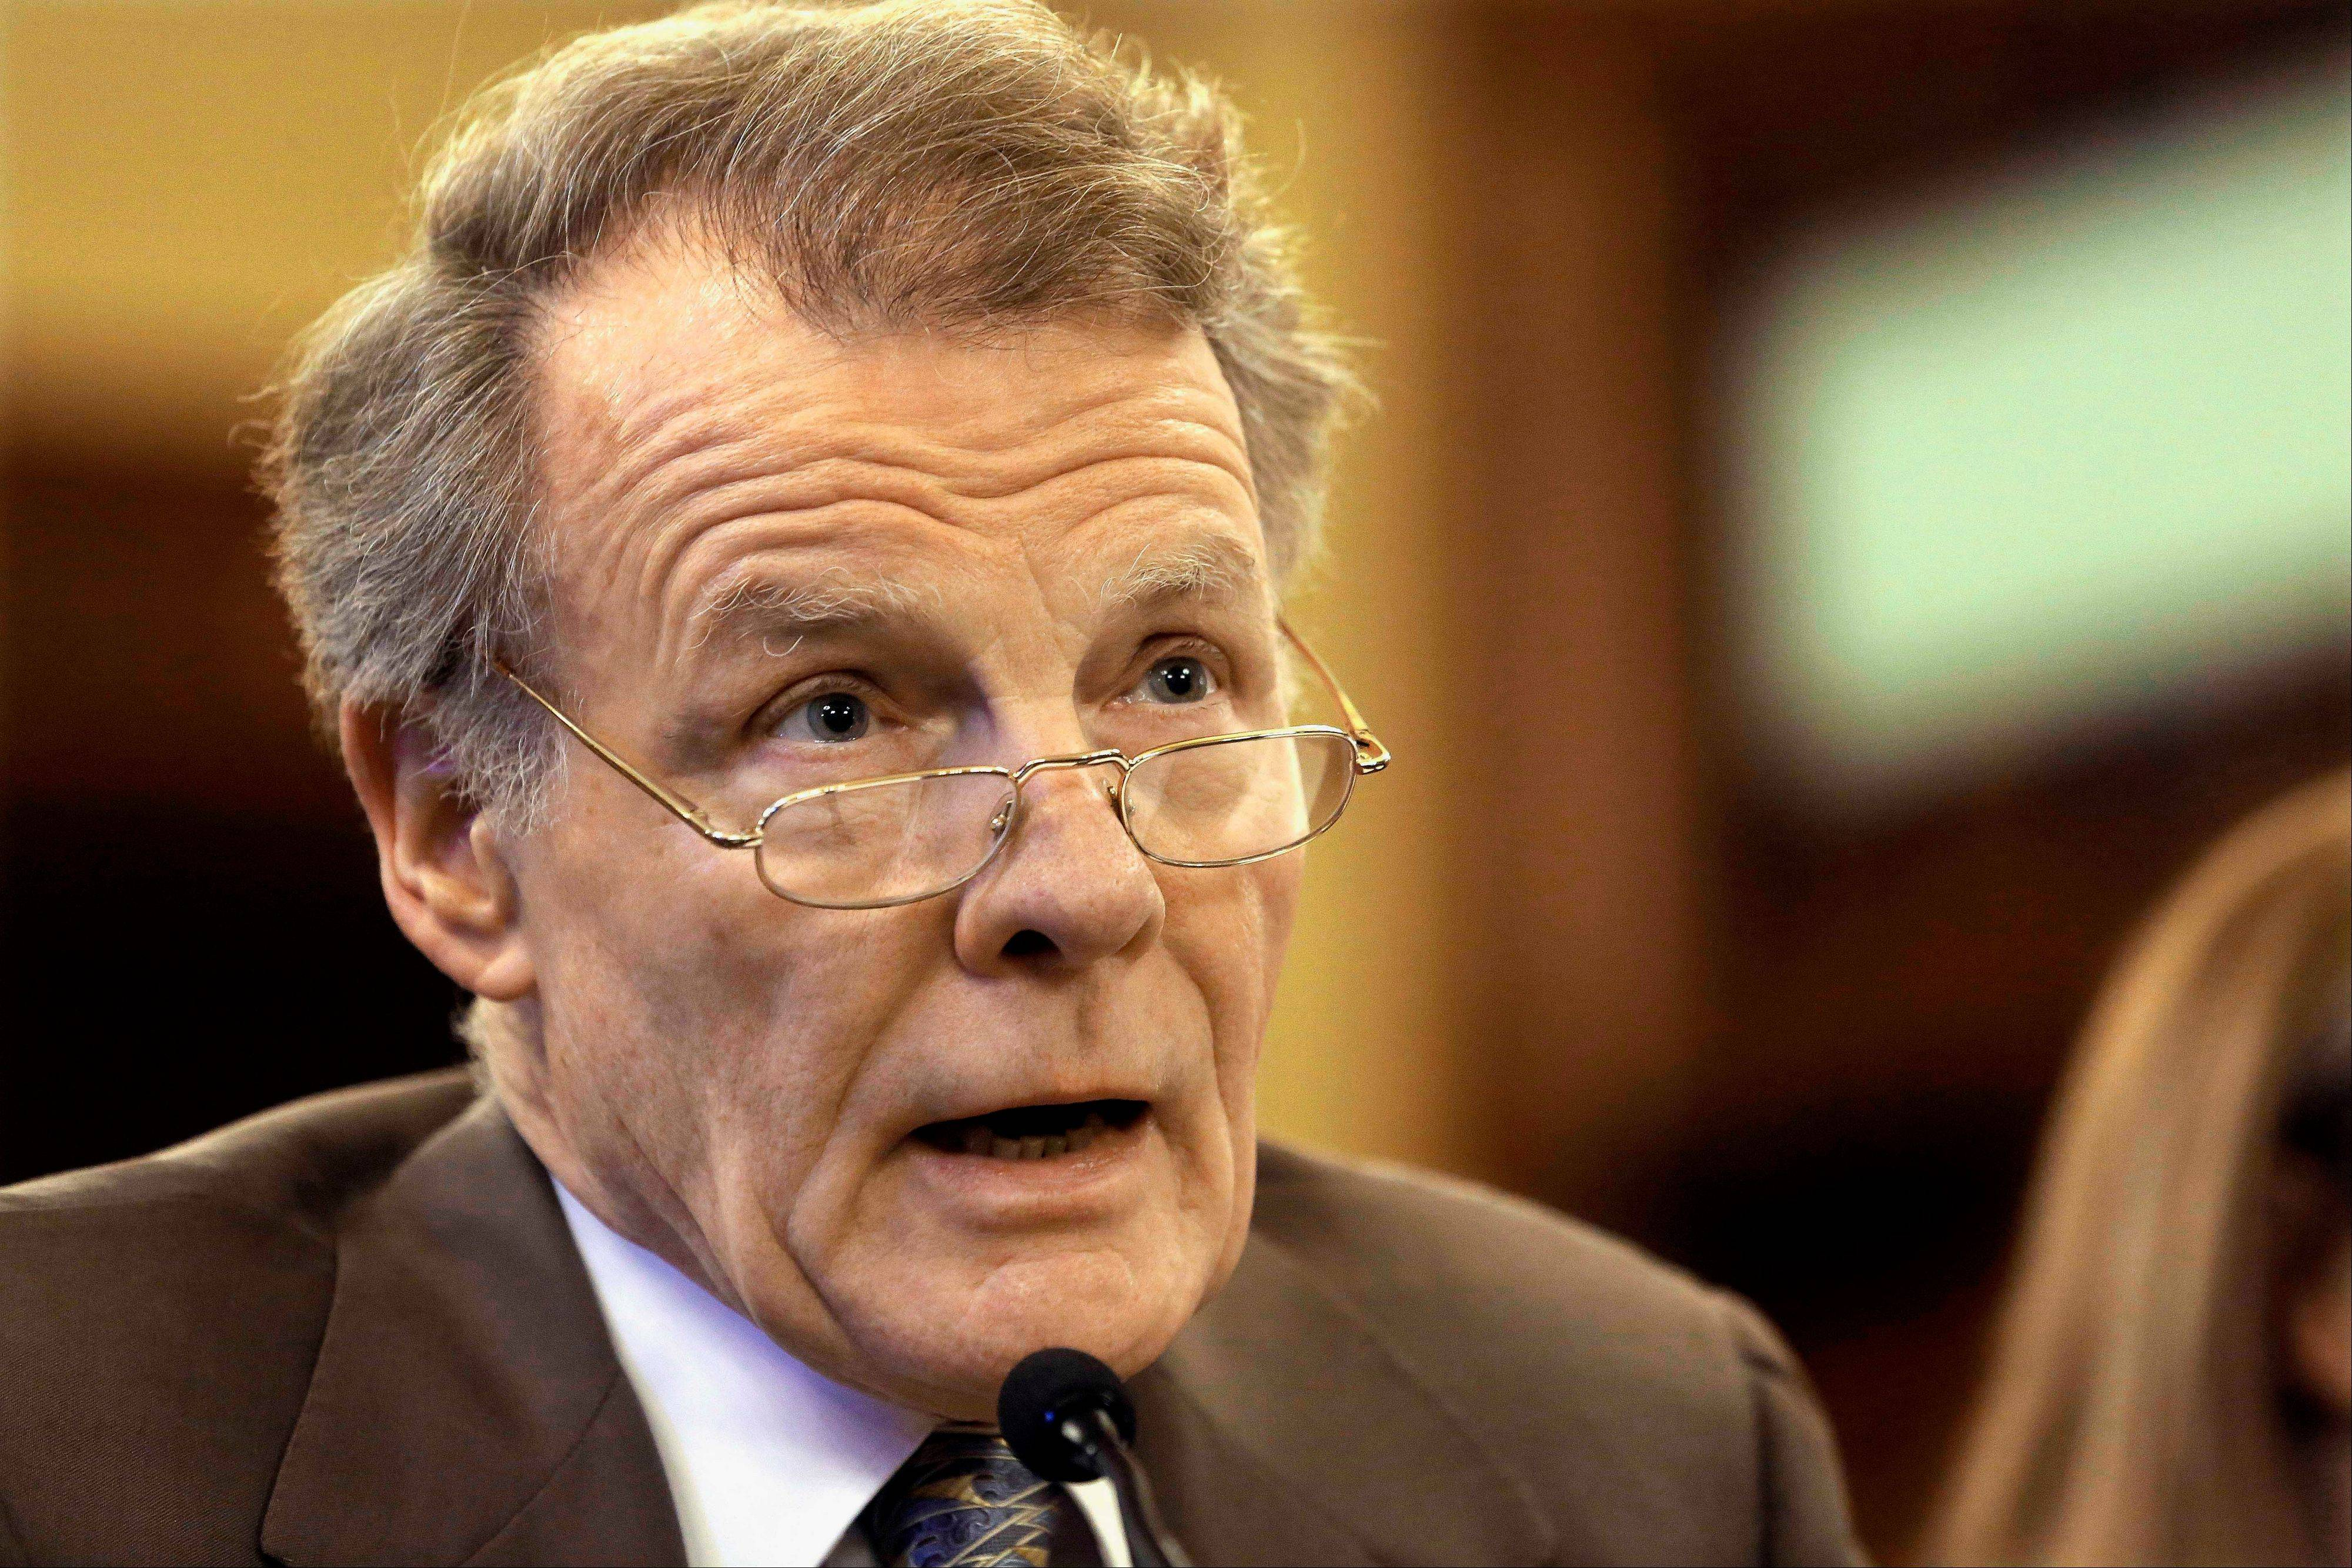 Speaker of the House Michael Madigan's pension plan calls for, among other things, higher contributions by employees and limits on how much in pension benefits retirees may collect.